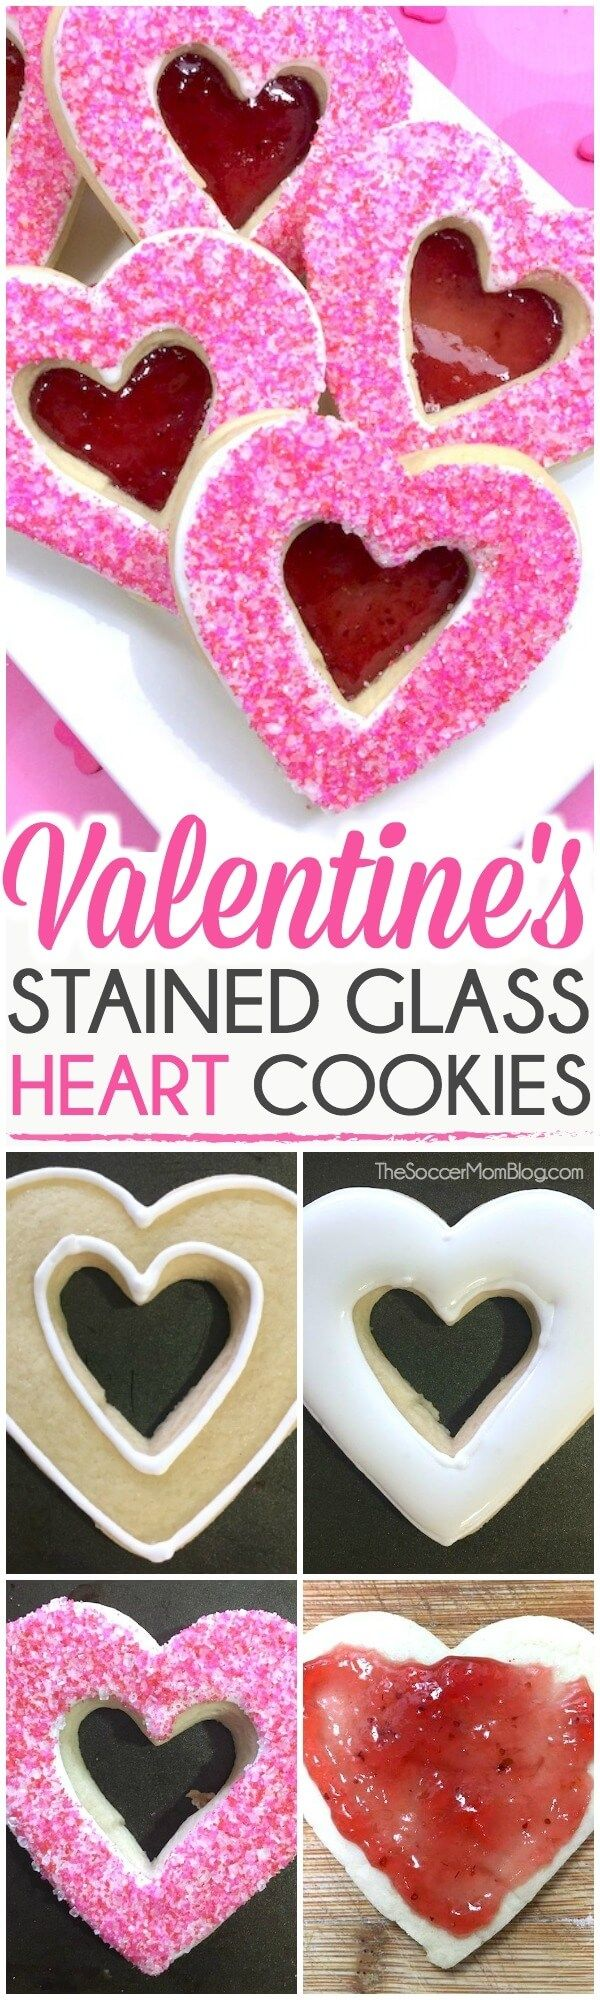 "These stained glass heart cookies make an absolutely gorgeous Valentine's Day treat! Real from-scratch sugar cookies with sparkling pink icing and a jelly ""stained glass"" cutout center. #valentinesday #cookies via @https://www.pinterest.com/soccermomblog"